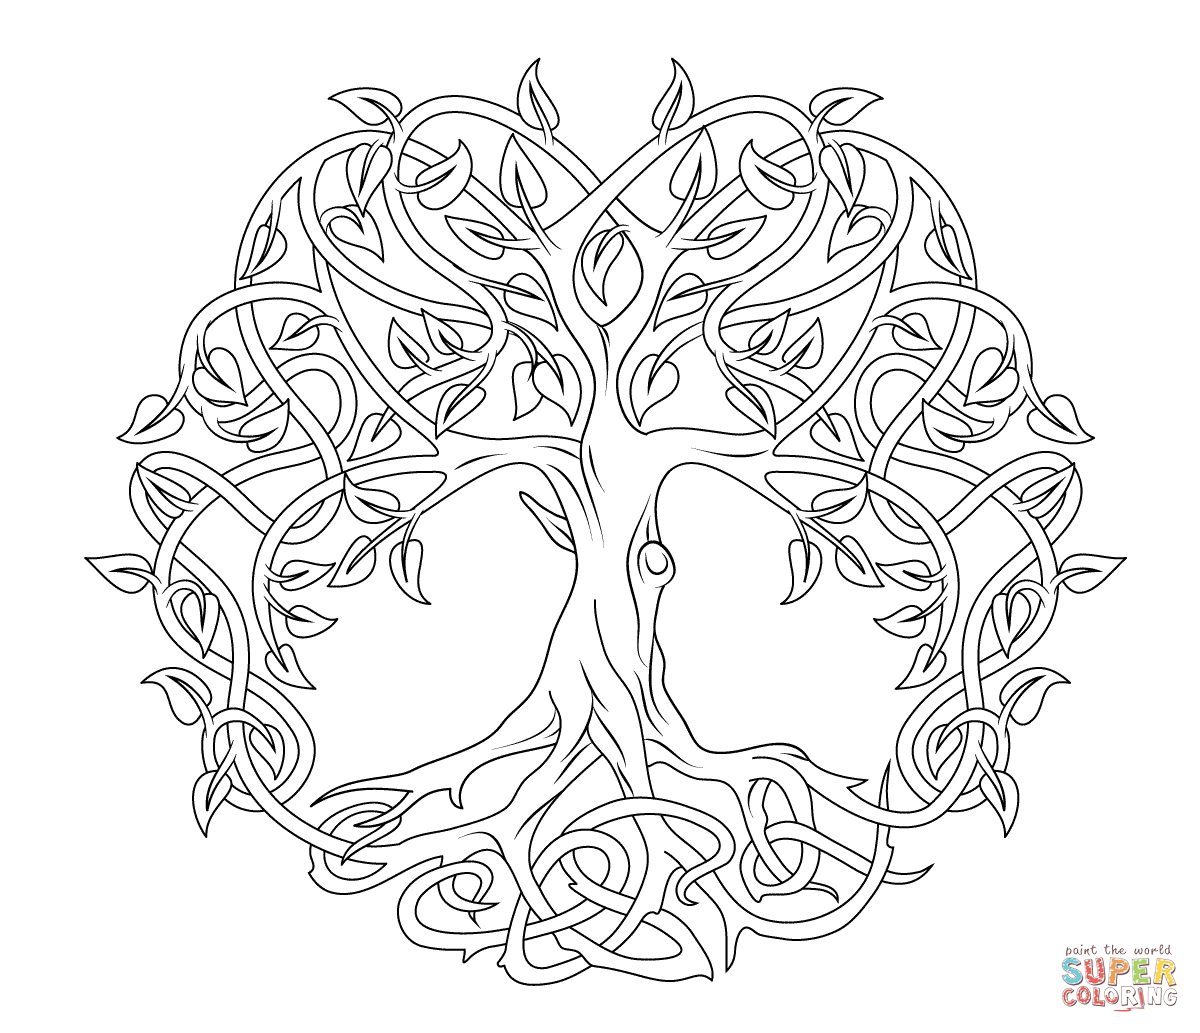 Celtic tree of life coloring page supercoloring mandala celtic tree of life coloring page supercoloring buycottarizona Gallery